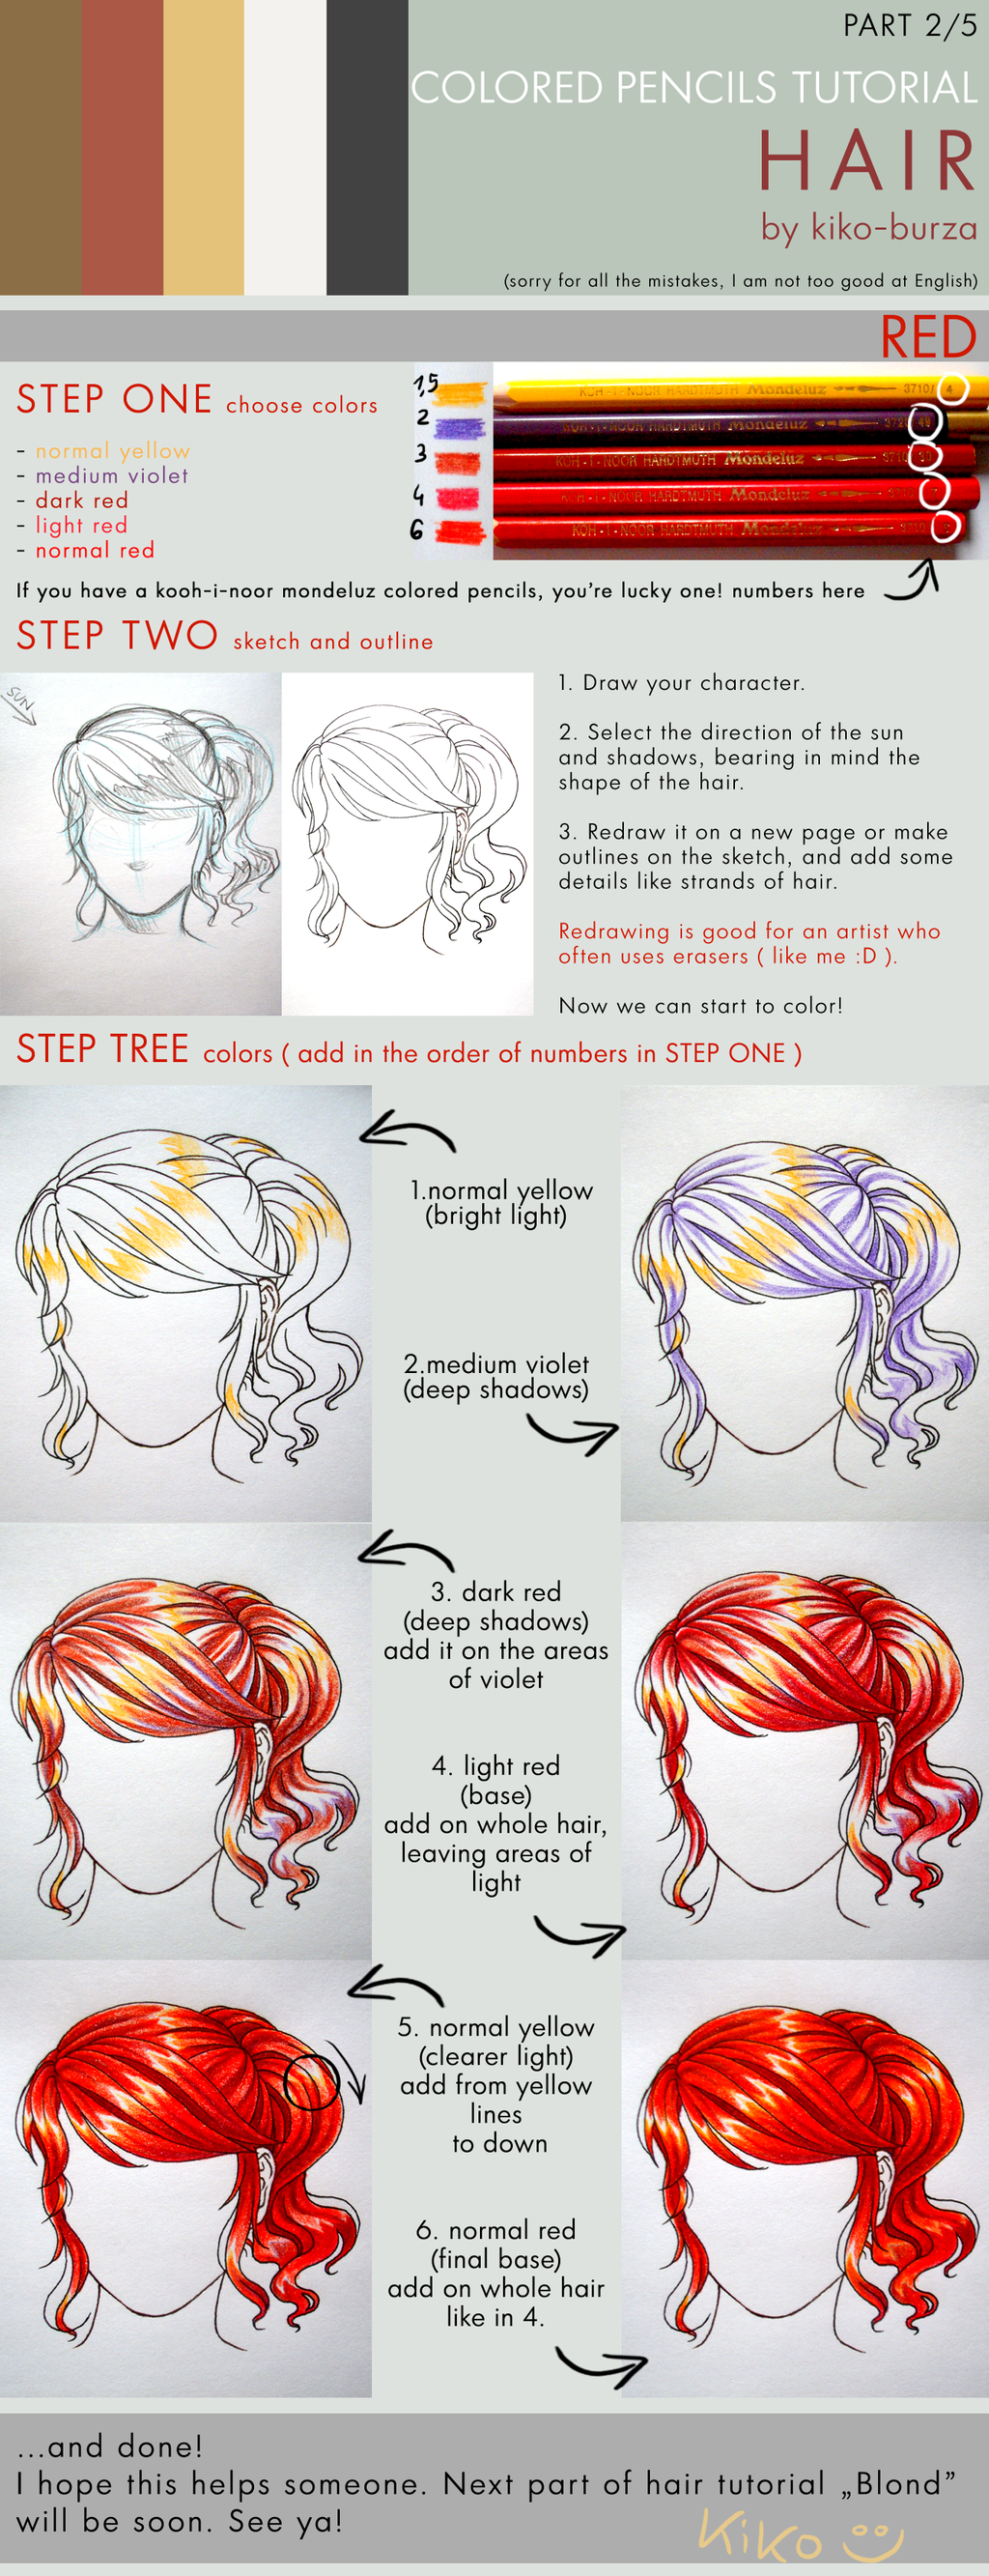 Colored pencils tutorial hair part 2 red by kiko burza